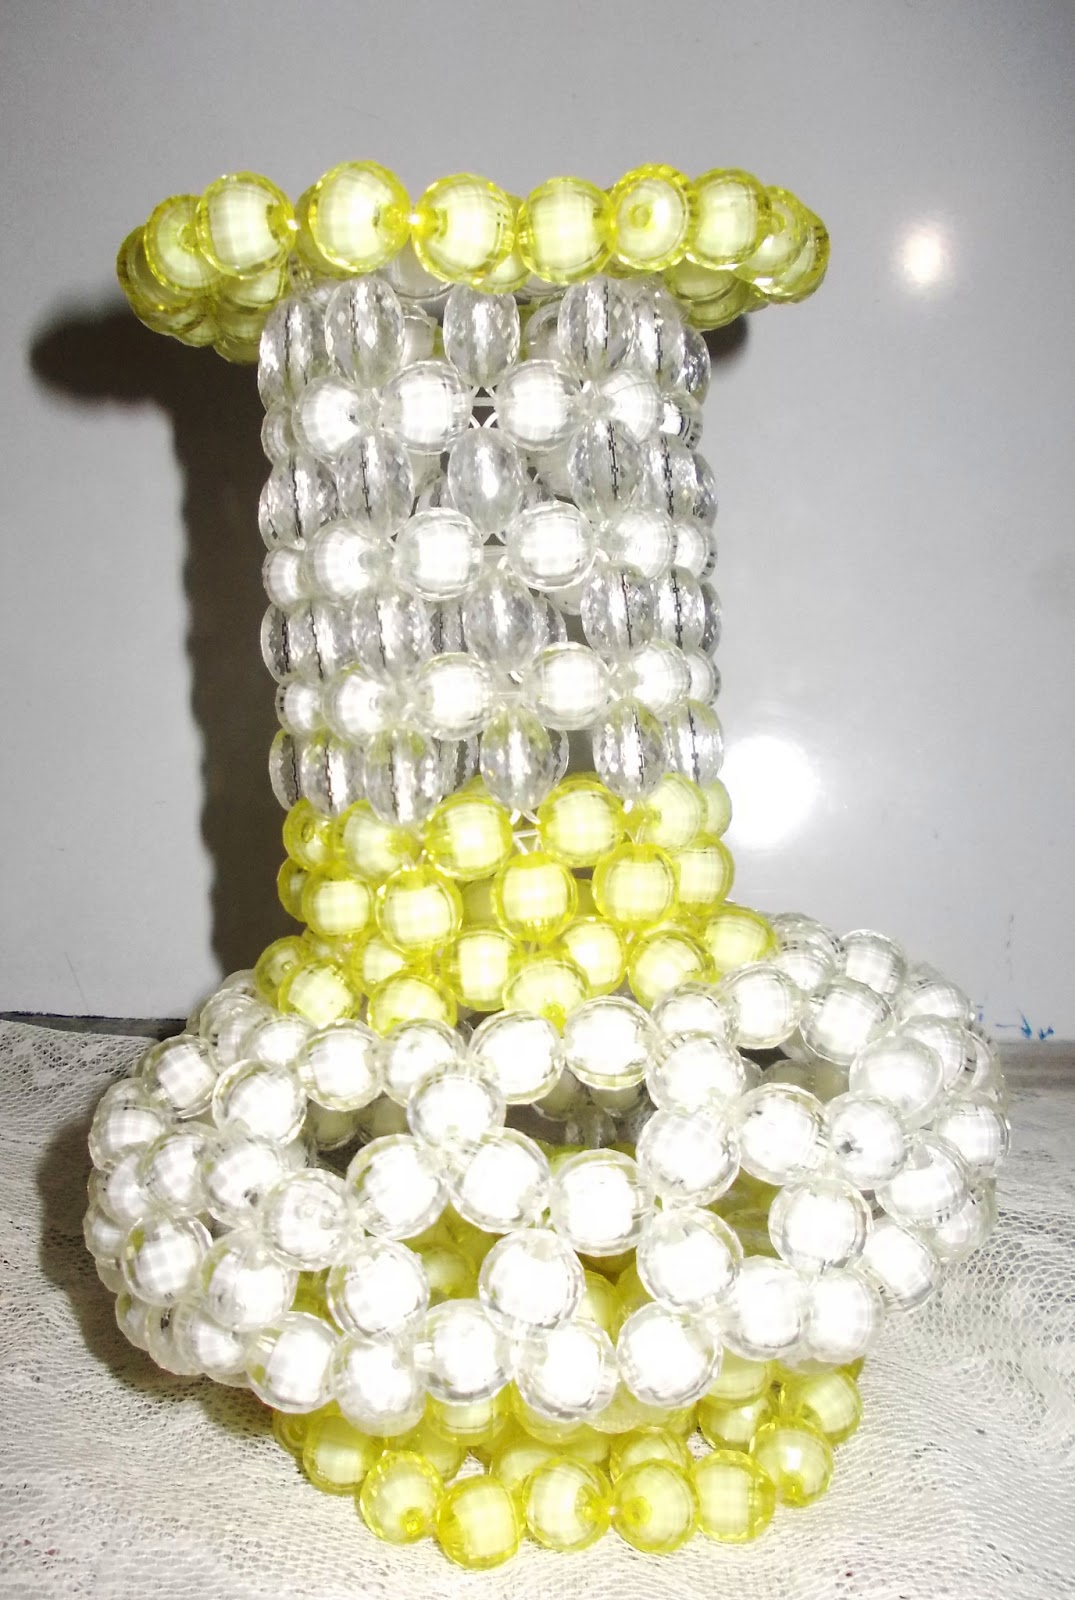 Home art and craft gallery plastic bead flower vase showpiece m 97 reviewsmspy